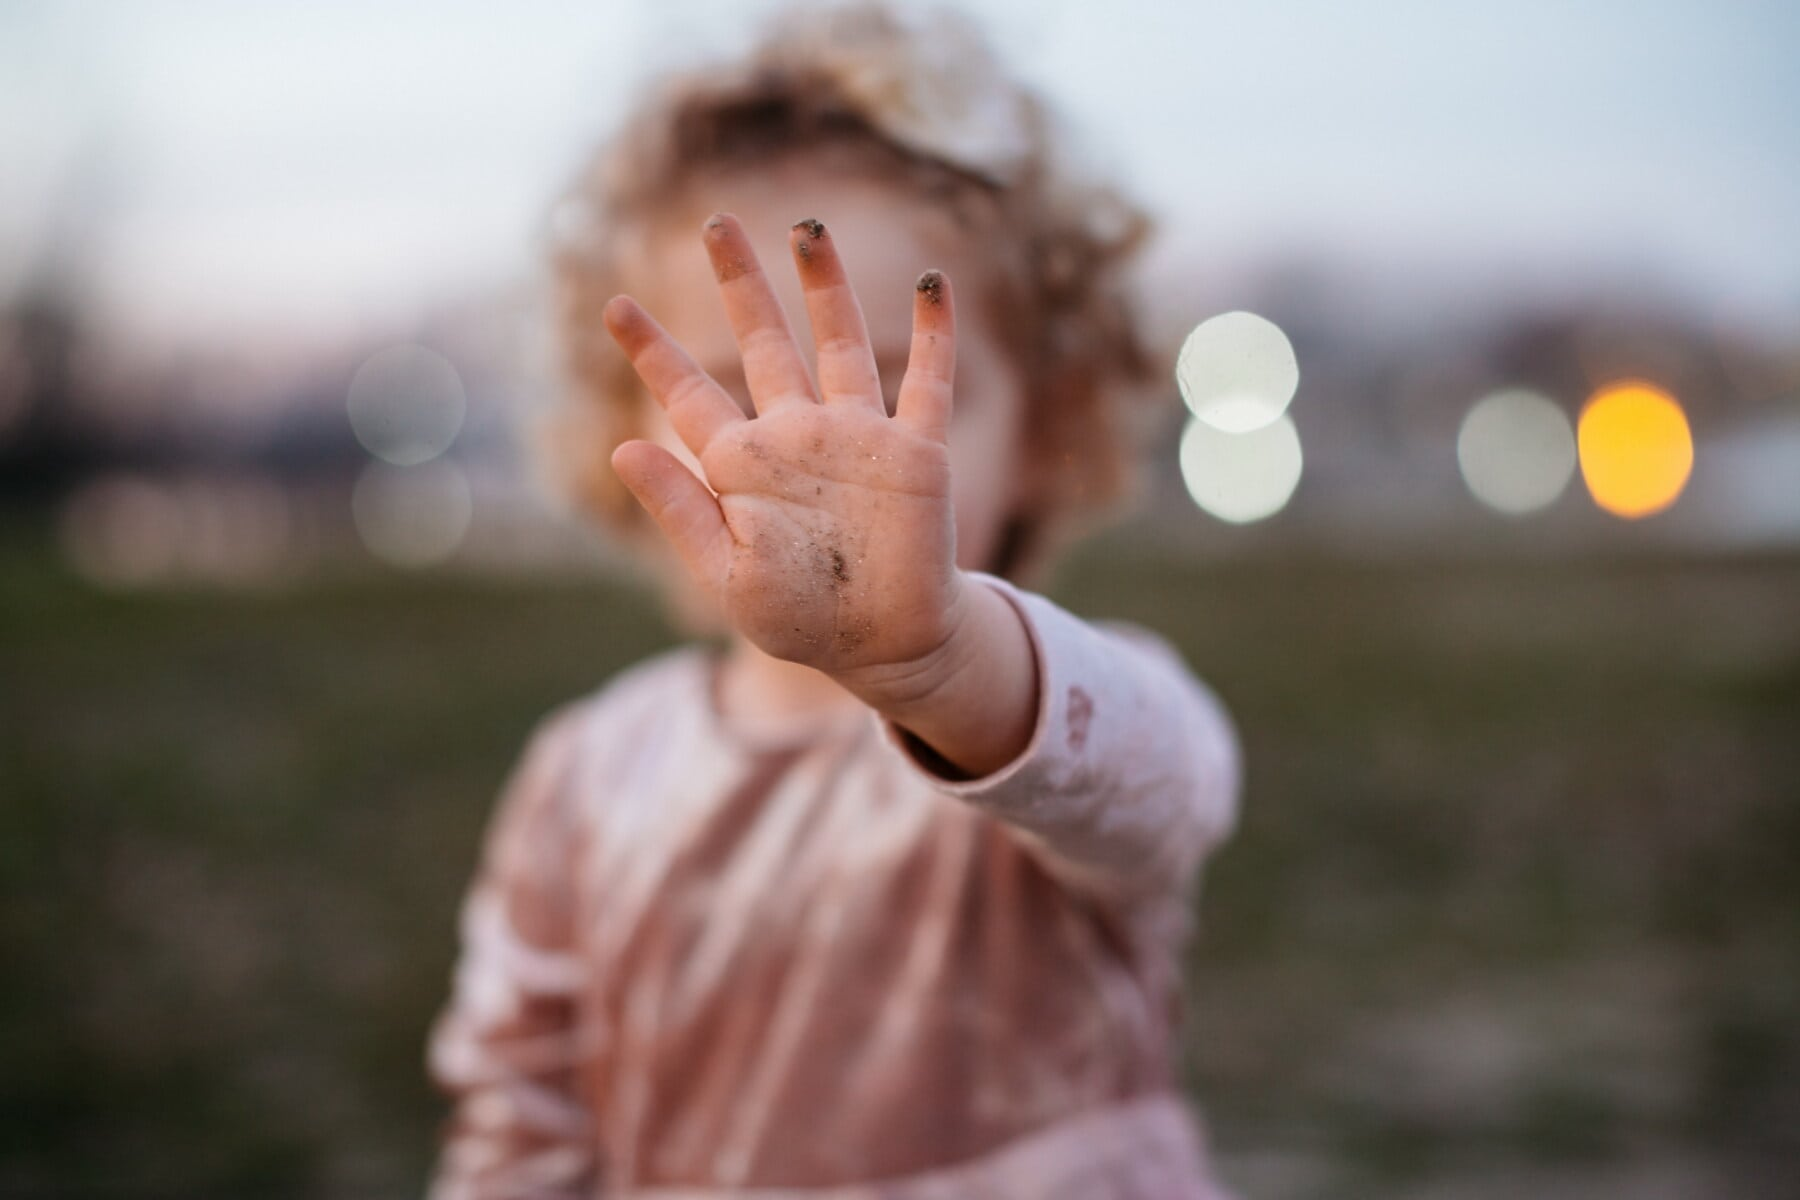 hand, finger, toddler, arm, nature, outdoors, blur, child, portrait, girl